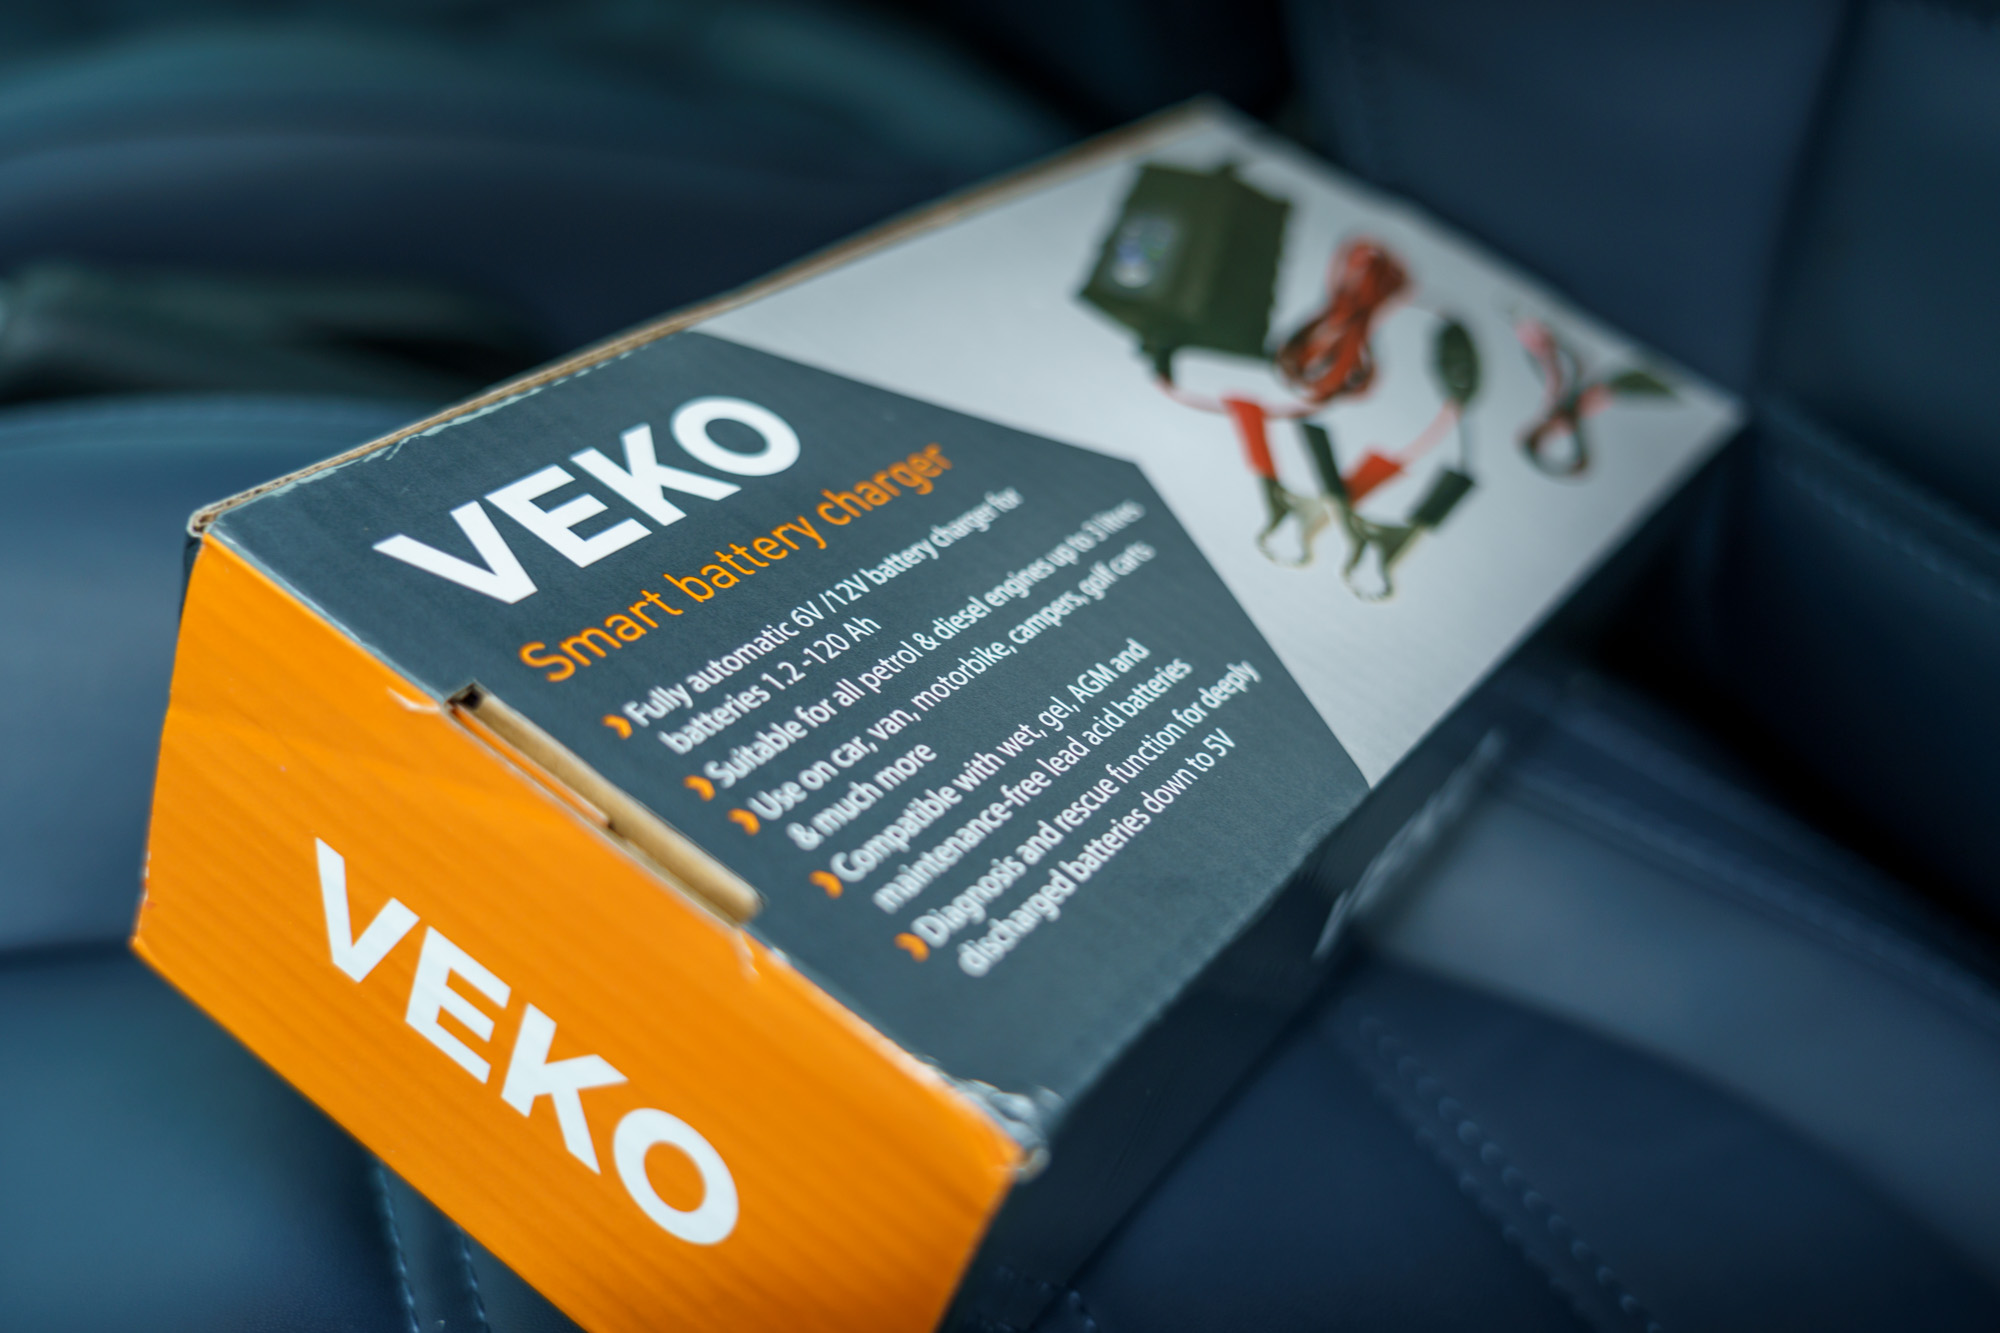 Smart Battery Veko Smart Battery Charger Review Easily Get You Through Winter